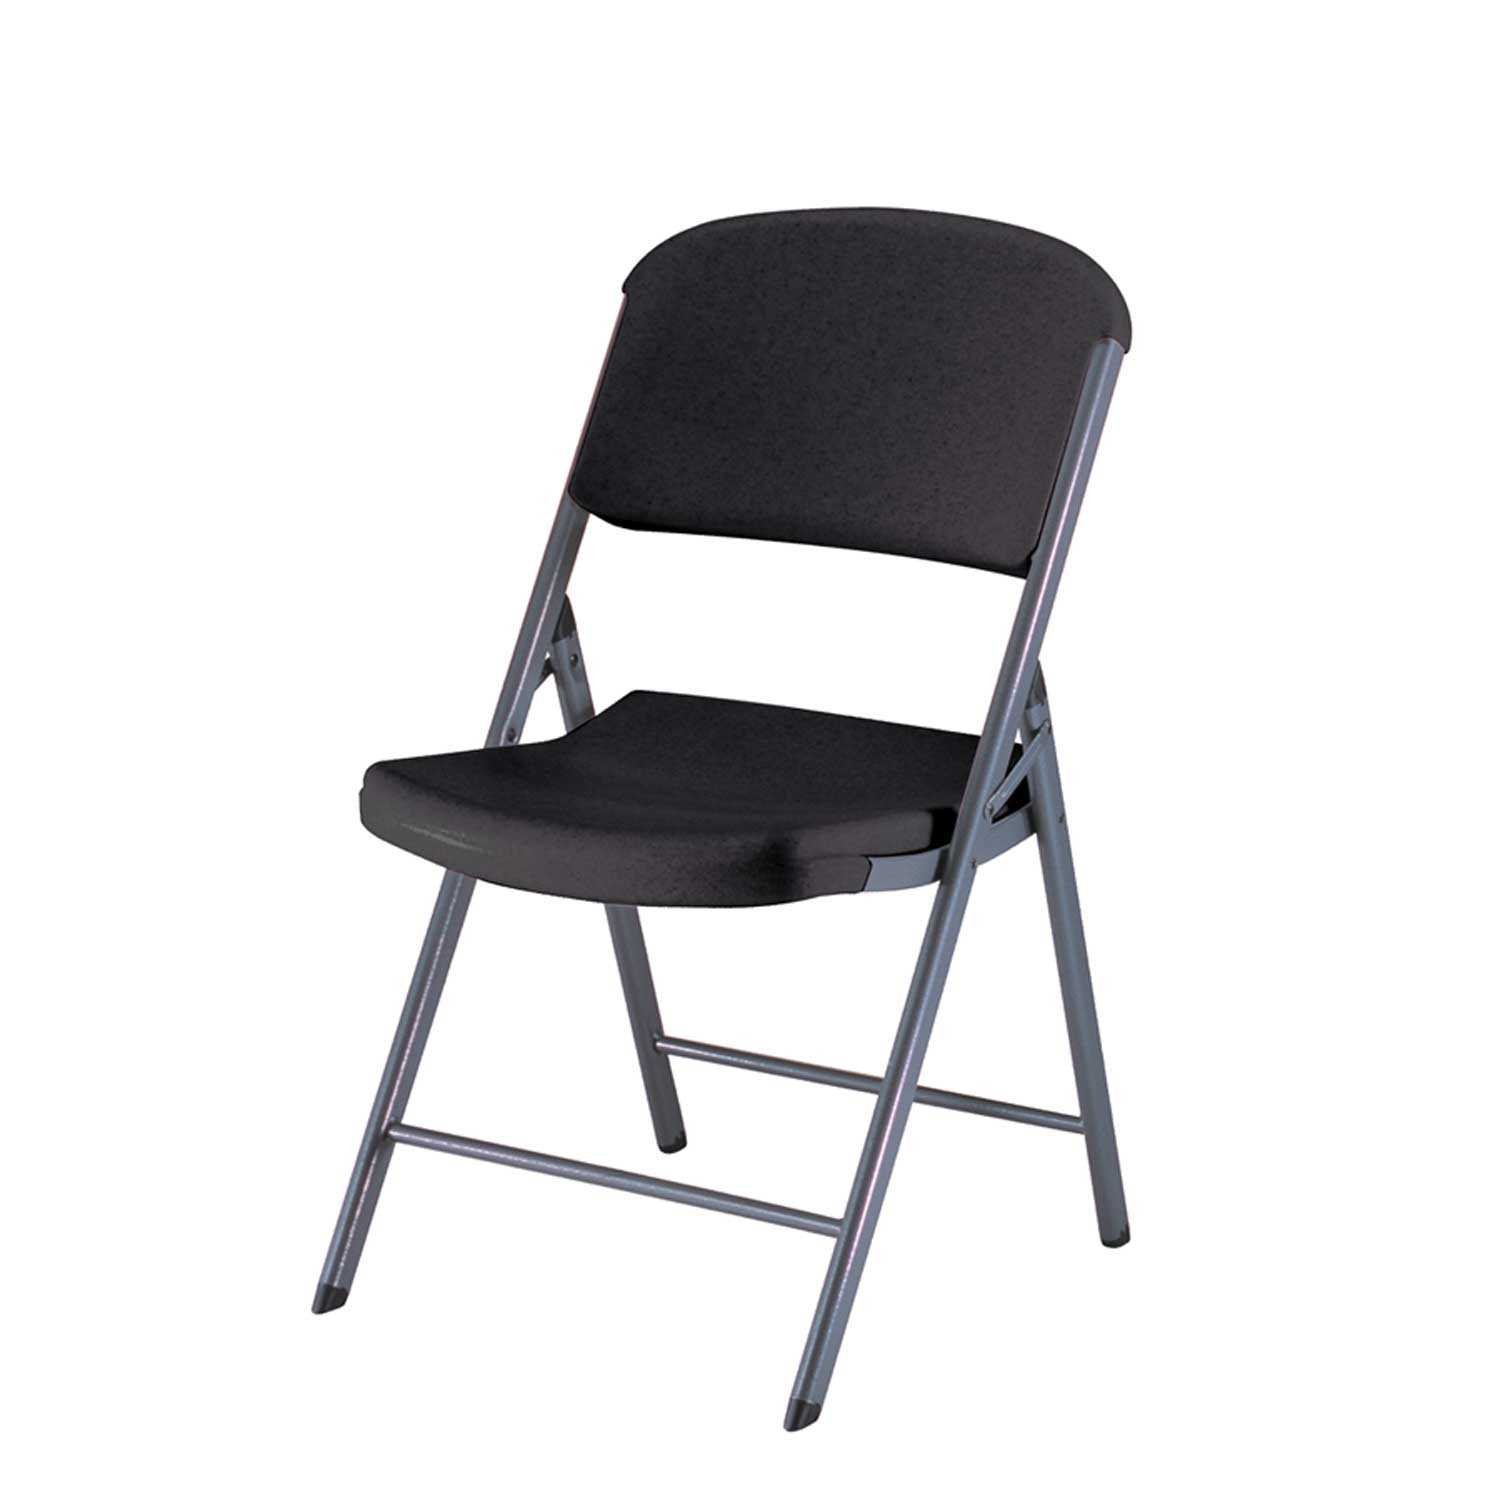 Lifetime 80187 Classic Commercial Folding Chair, Black with Gray Frame, 4 Pack